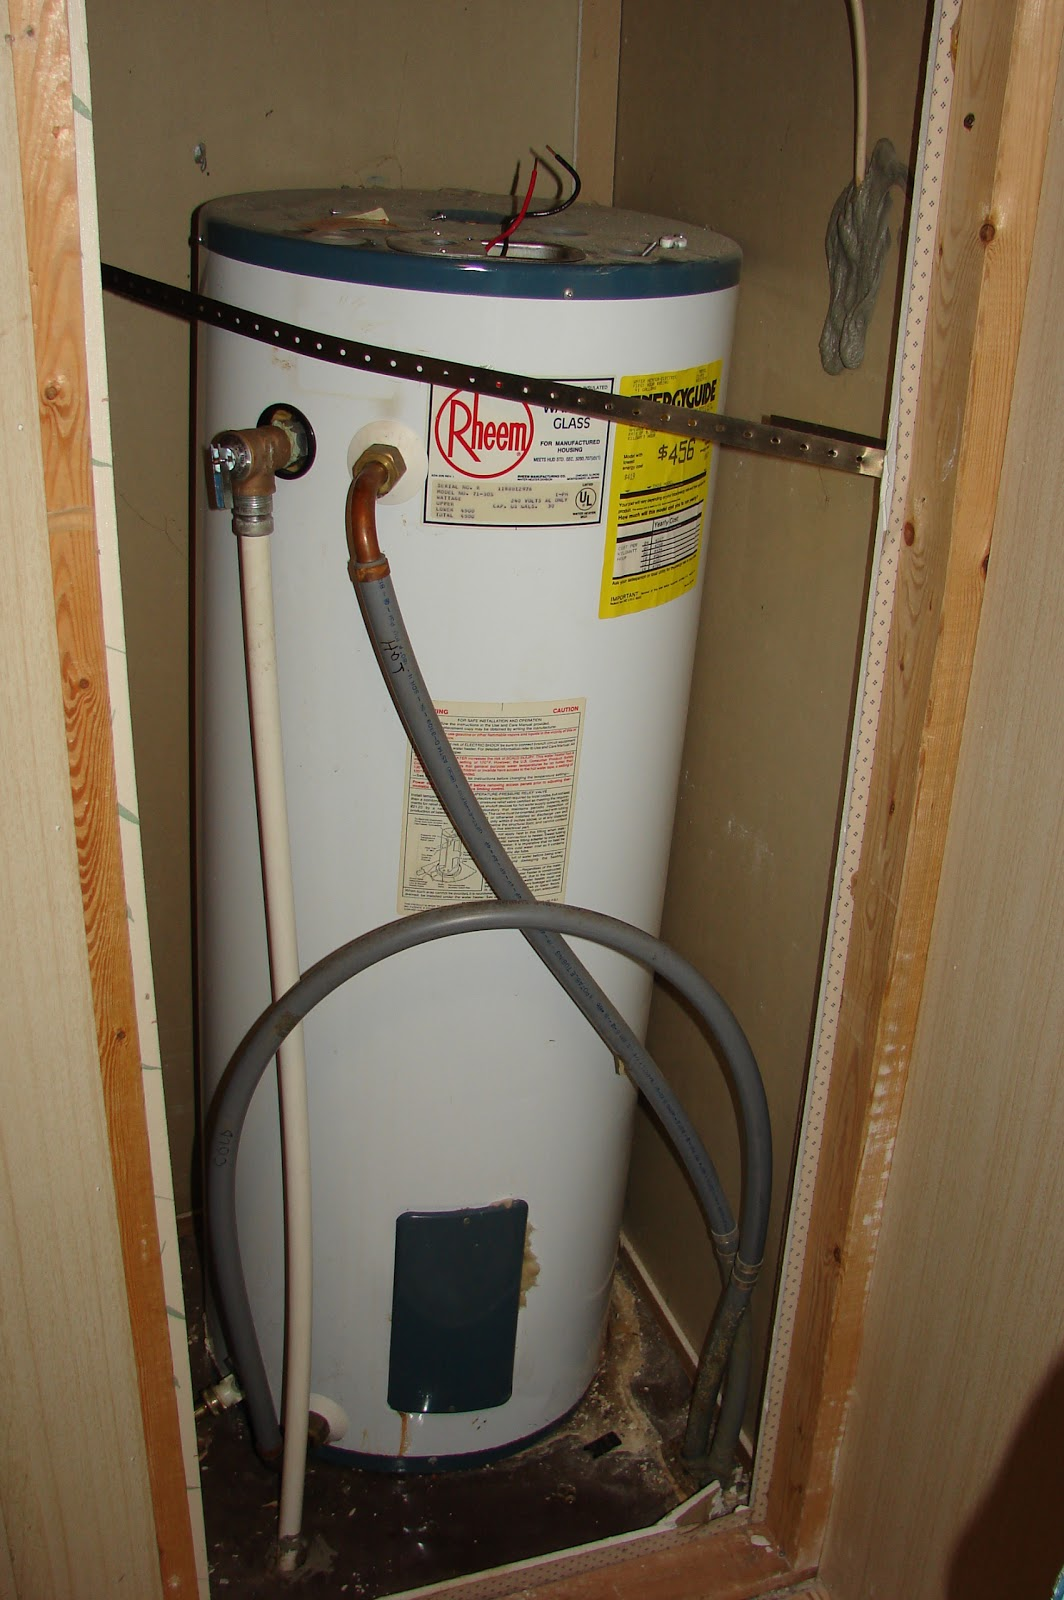 Mobile Home Tankless Water Heater on mobile home hot water, mobile home water softeners, mobile home water heater replacement, mobile home water lines, mobile home water heater elements, mobile home electric heaters, mobile home wall heaters, mobile home water filtration, cheap mobile home water heaters, rv tankless water heaters, mobile home approved water heaters, commercial tankless water heaters,